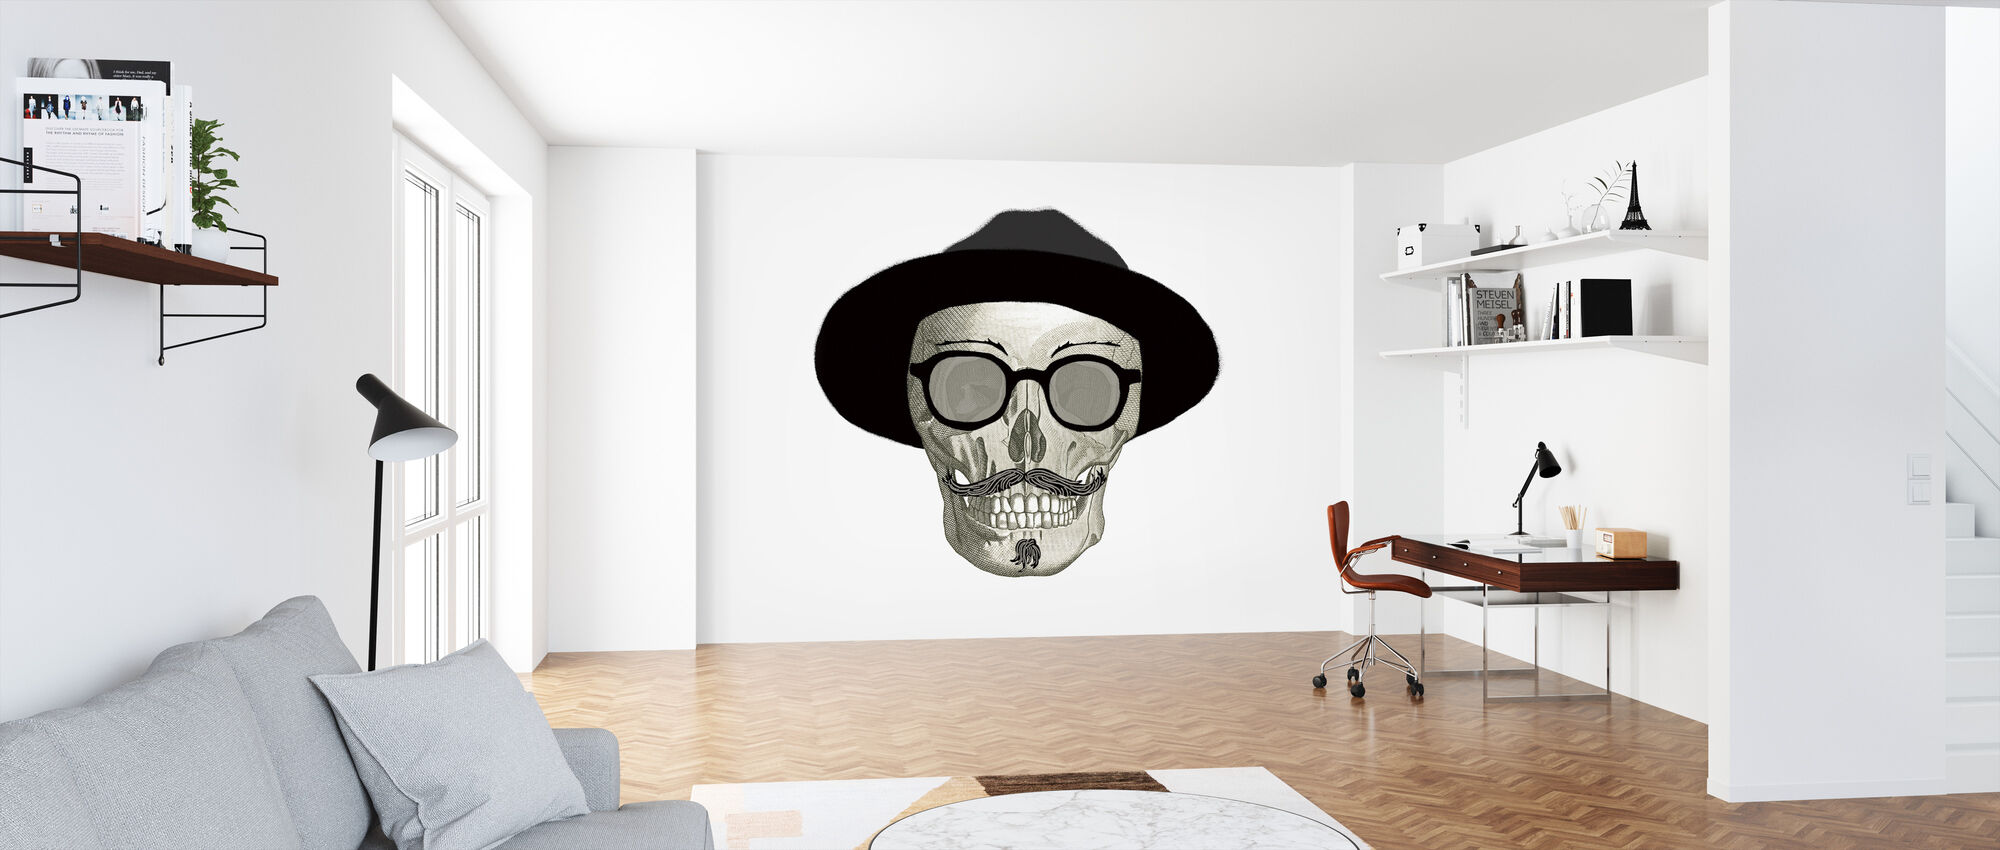 Hipster Skull III - Wallpaper - Office